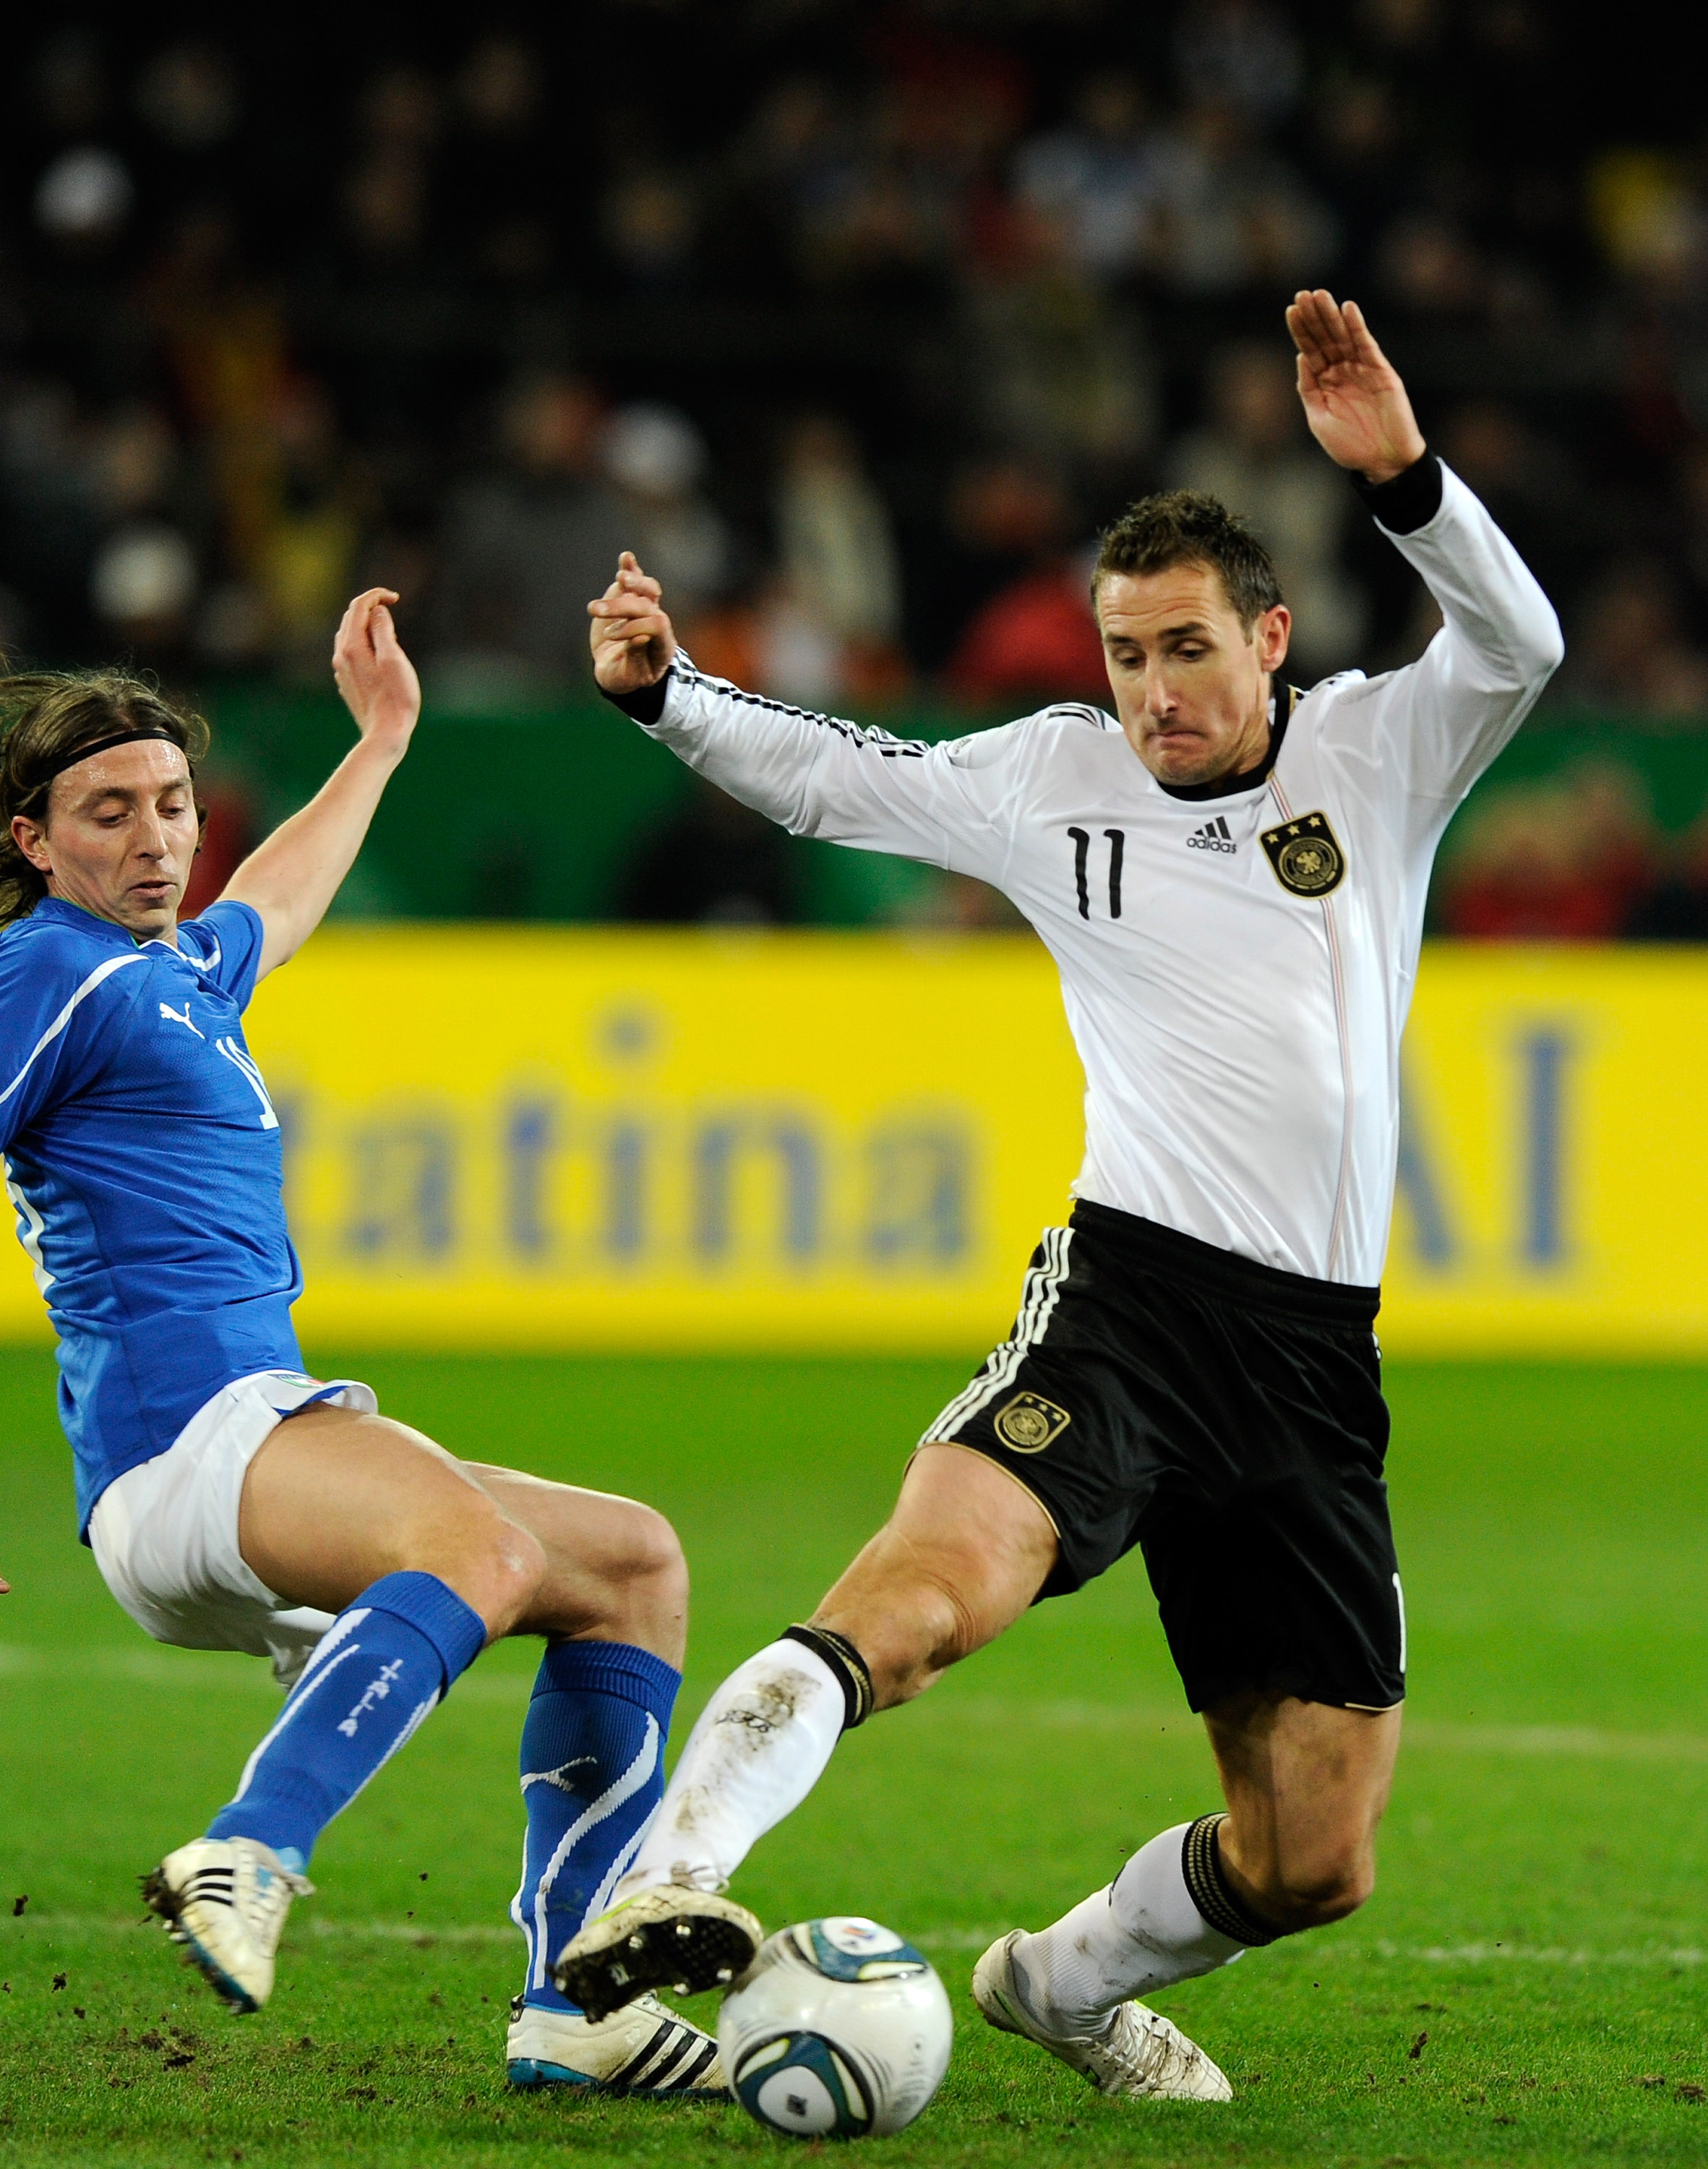 DORTMUND, GERMANY - FEBRUARY 09:  Riccardo Montolivo of Italy and Miroslav Klose of Germany compete for the ball during the International Friendly match between Germany and Italy on February 9, 2011 in Dortmund, Germany.  (Photo by Claudio Villa/Getty Ima